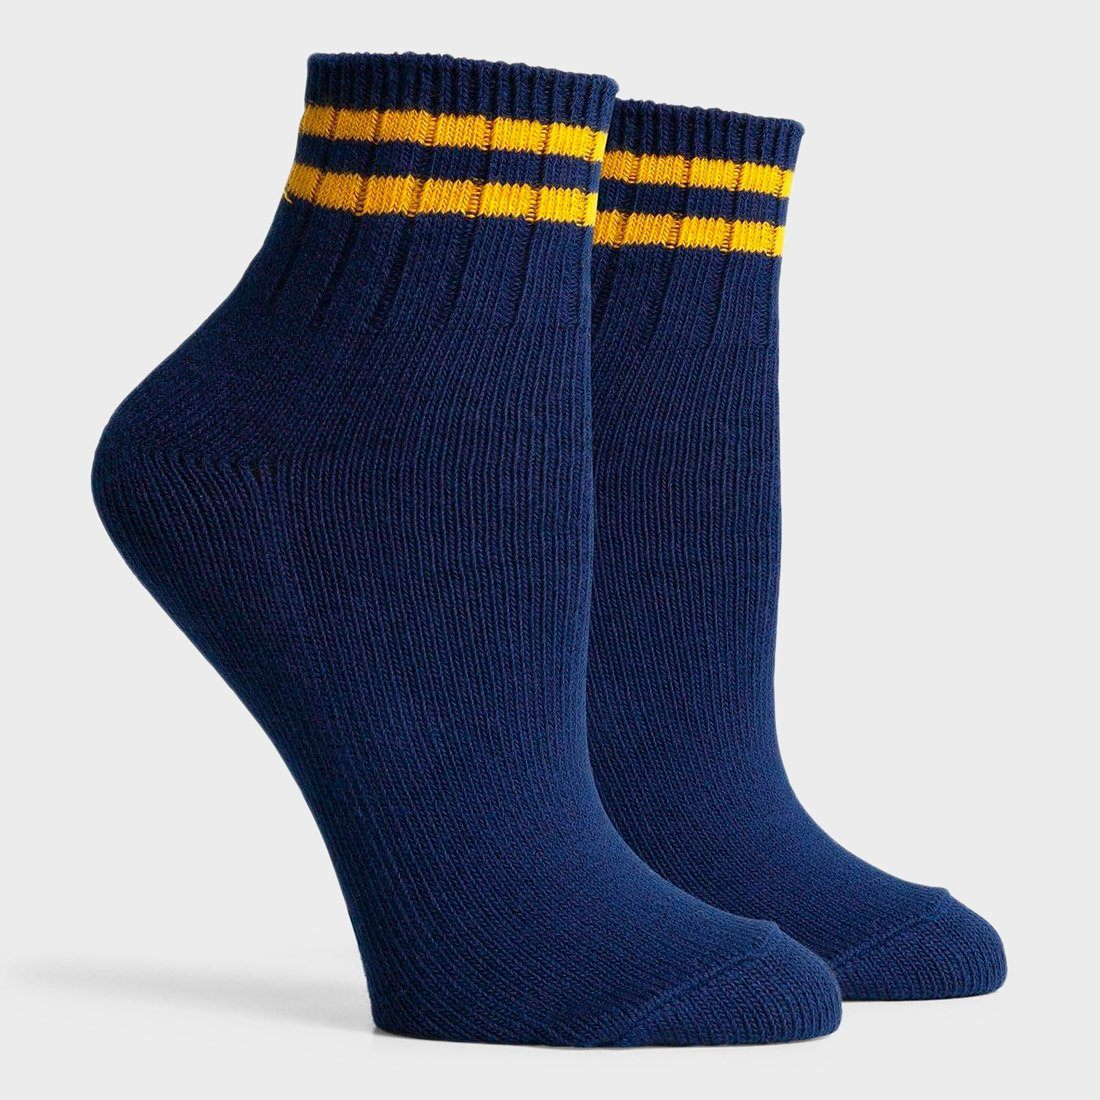 Richer Poorer Women's Aria Ankle Sock Navy/ Yellow